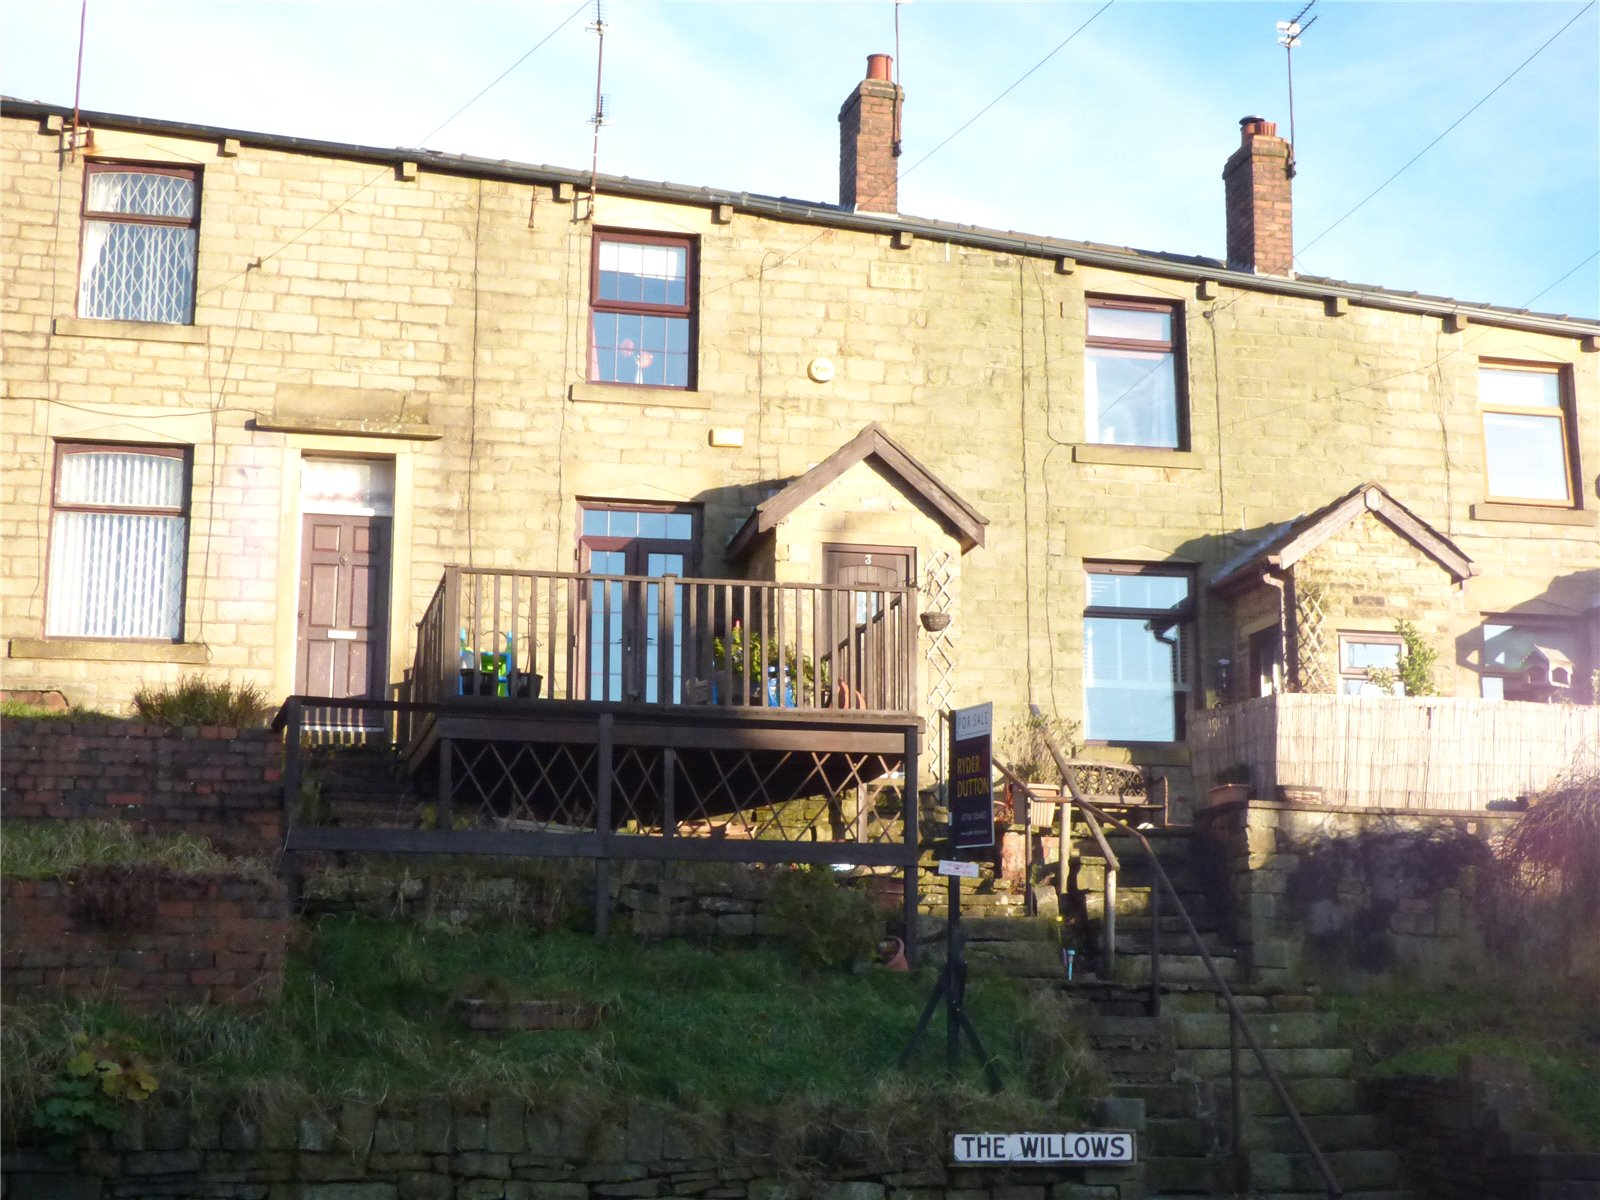 2 Bedrooms Terraced House for sale in The Willows, Whitworth, Rochdale, Lancashire, OL12